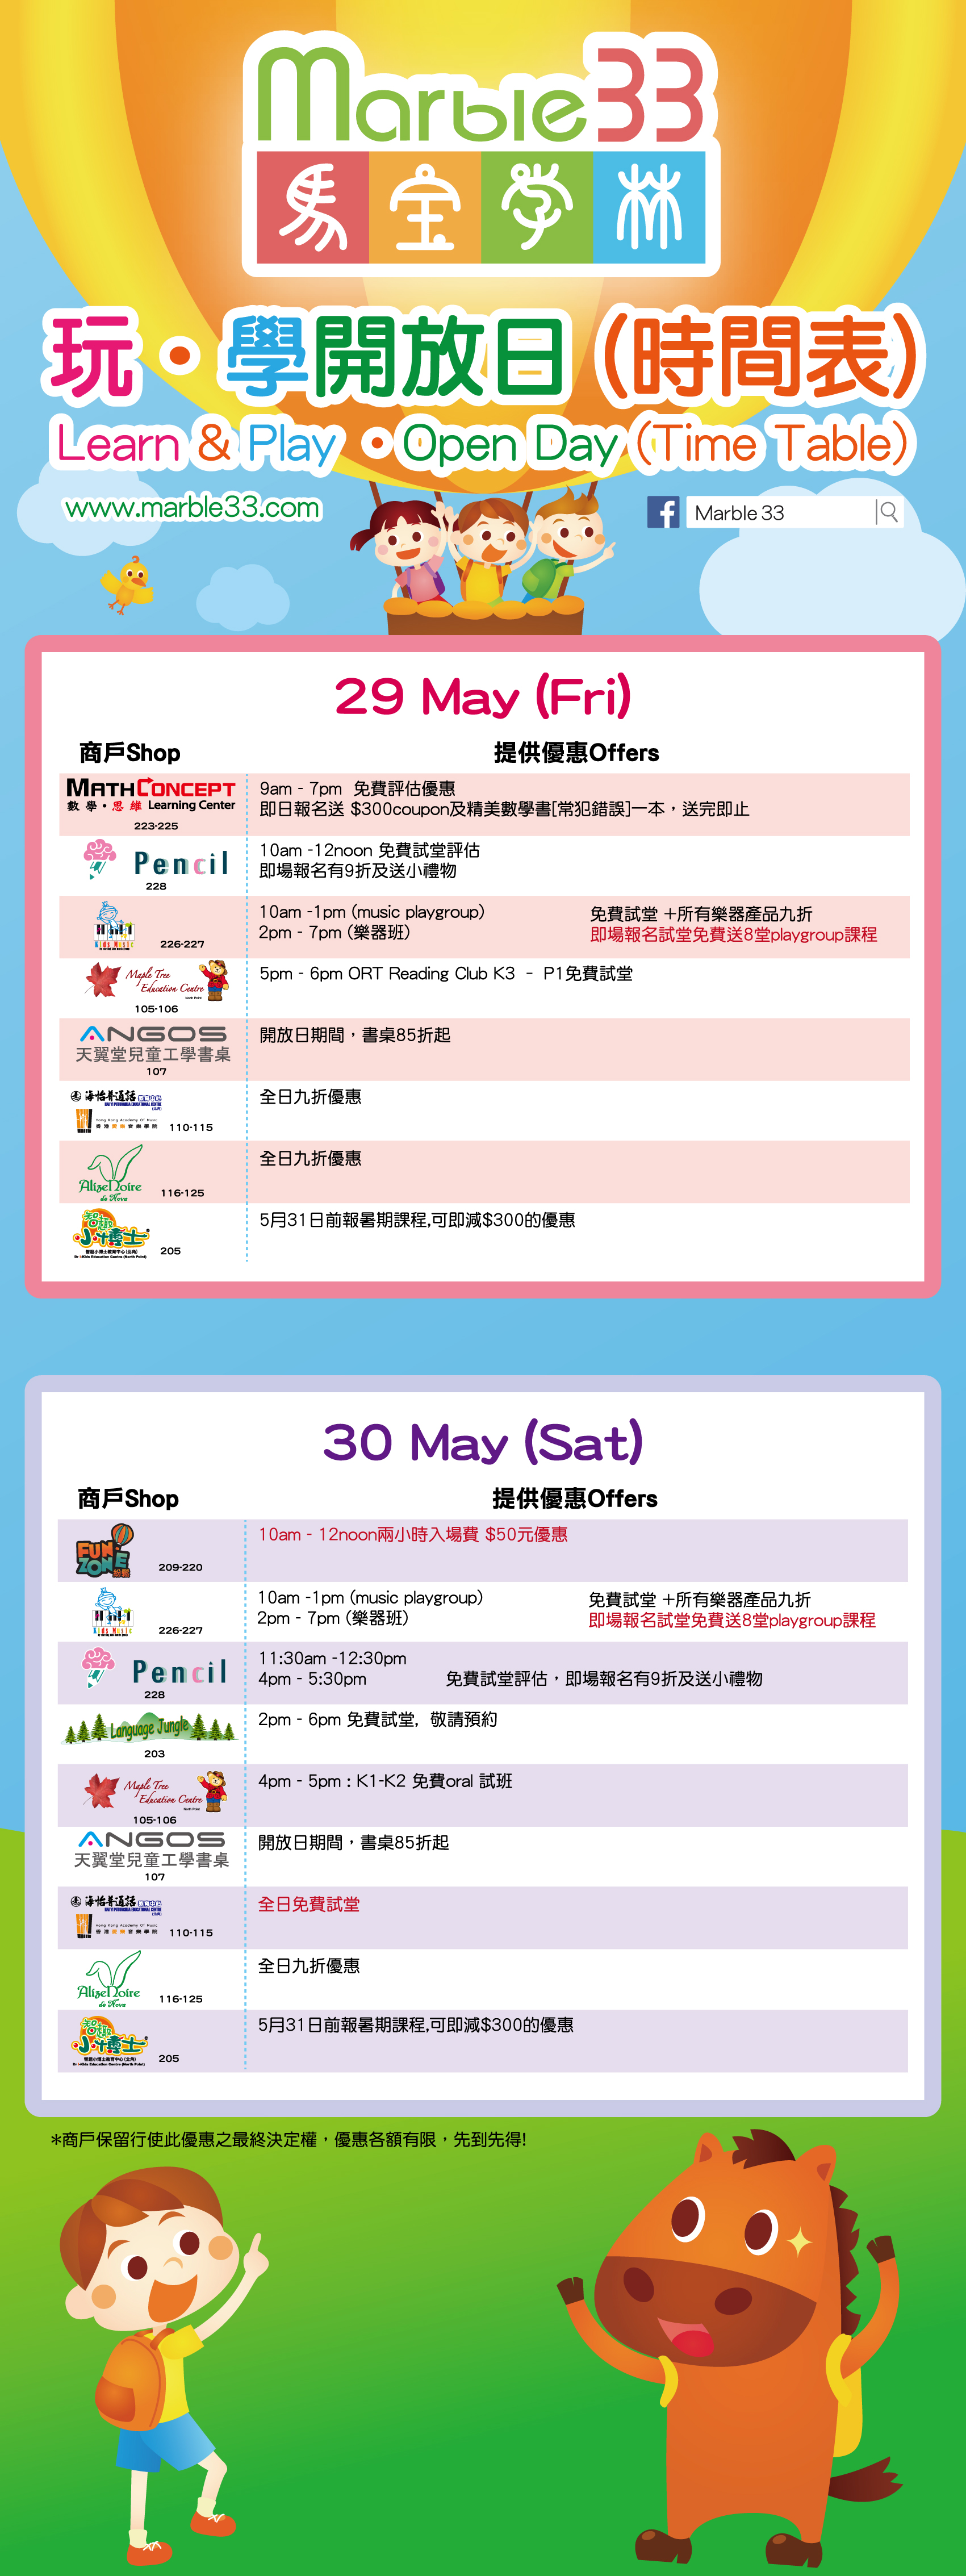 2015.05.29-30-M33 Open Day Time Table.jpg